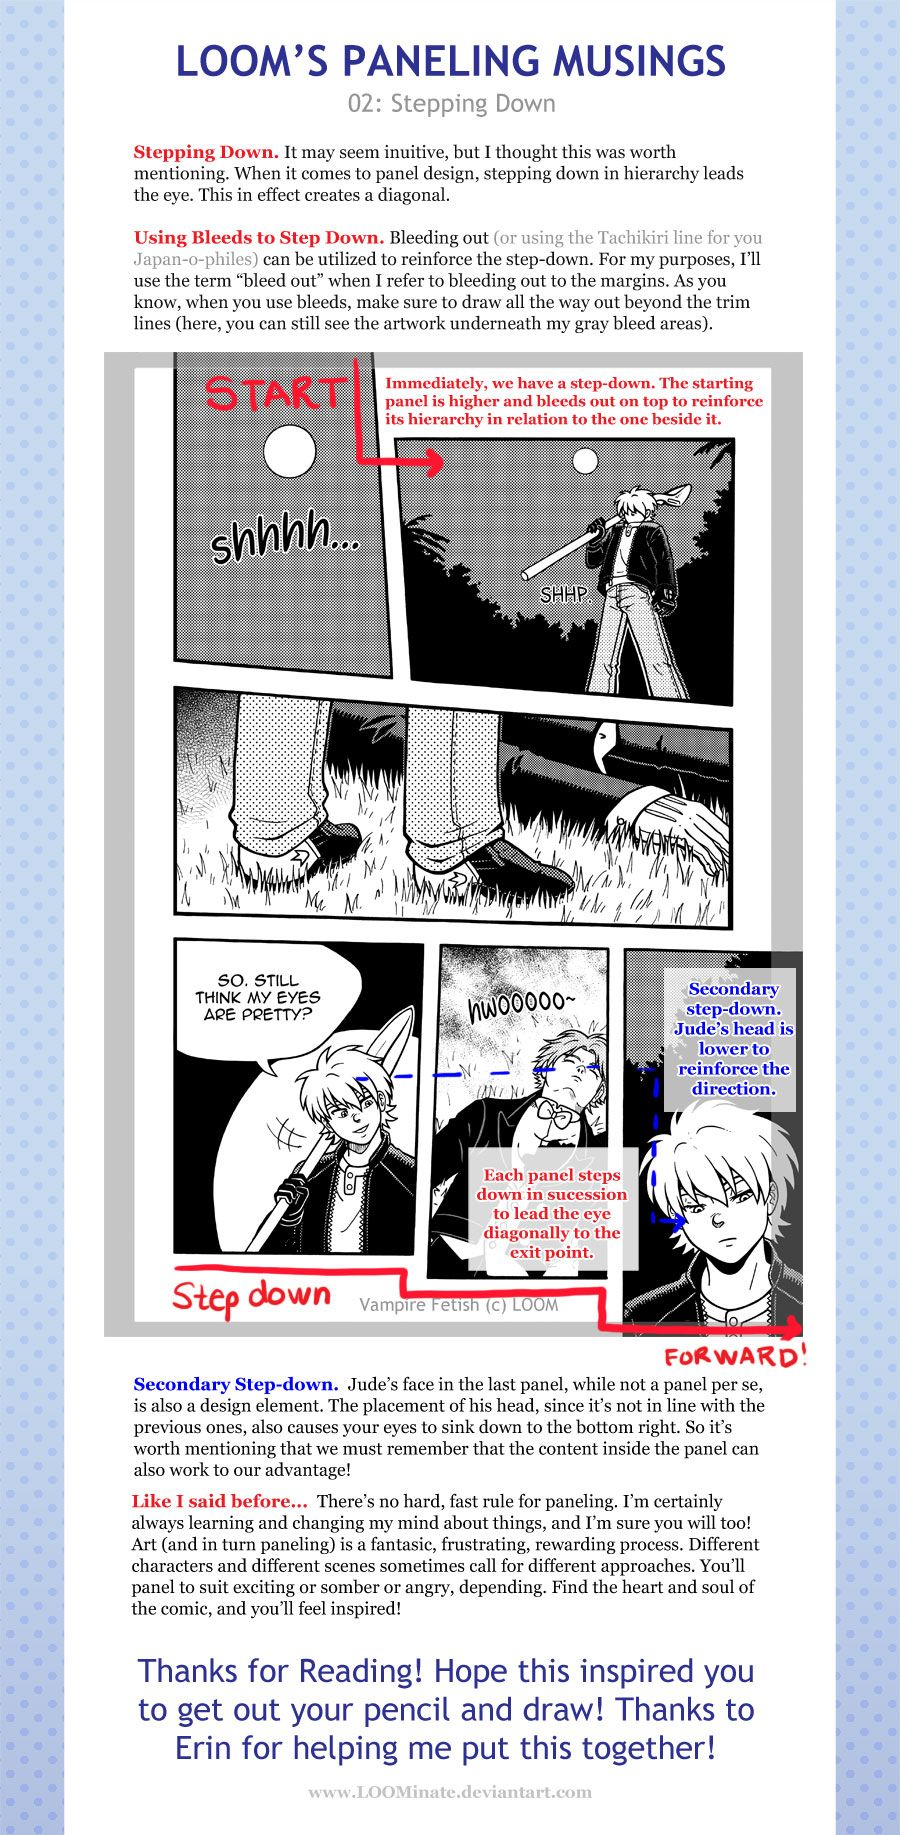 Loom S Paneling Musings 02 Stepping Down By Loominate Deviantart Com On Deviantart Comic Tutorial Comic Book Layout Comic Layout